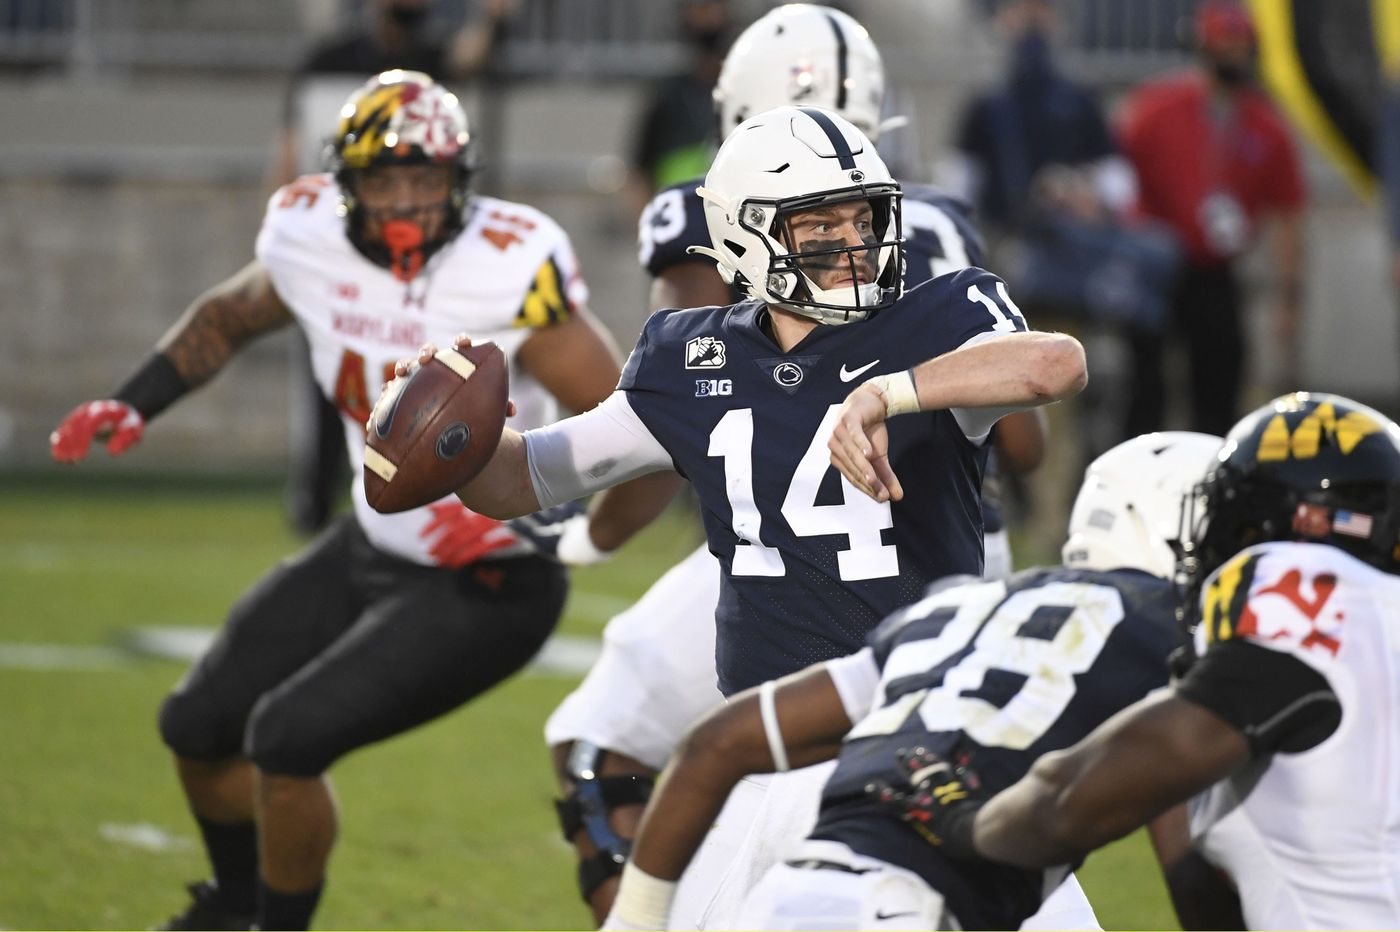 Winless Penn State shocked by Maryland, 35-19, as players talk about lack of accountability